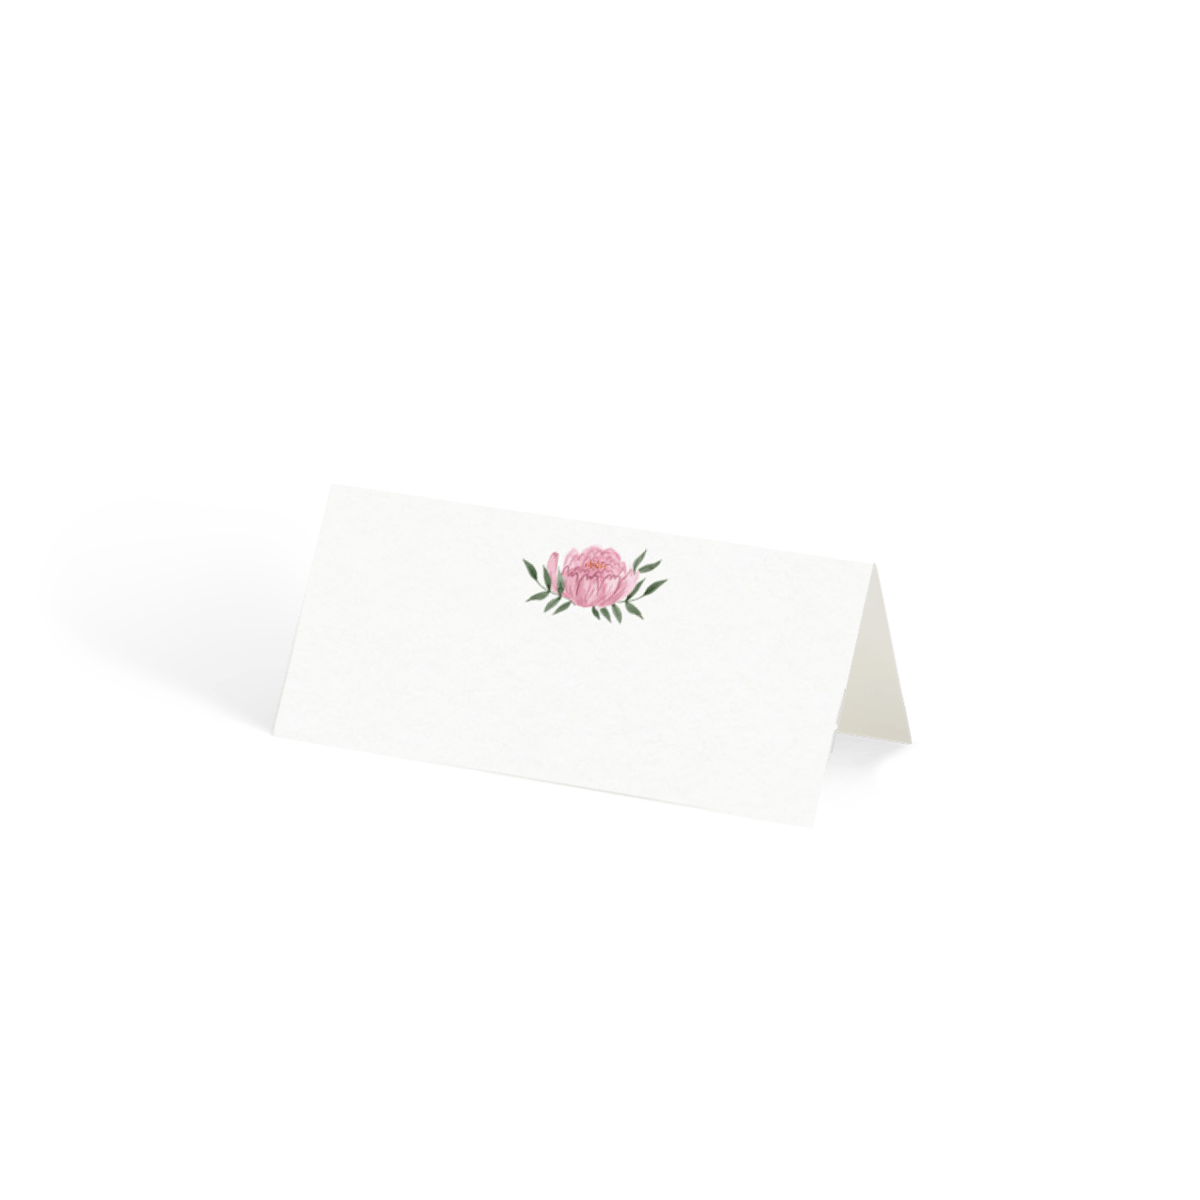 Https%3a%2f%2fwww.papier.com%2fproduct image%2f69727%2f8%2fdusky peonies 16485 front 1553092350.png?ixlib=rb 1.1